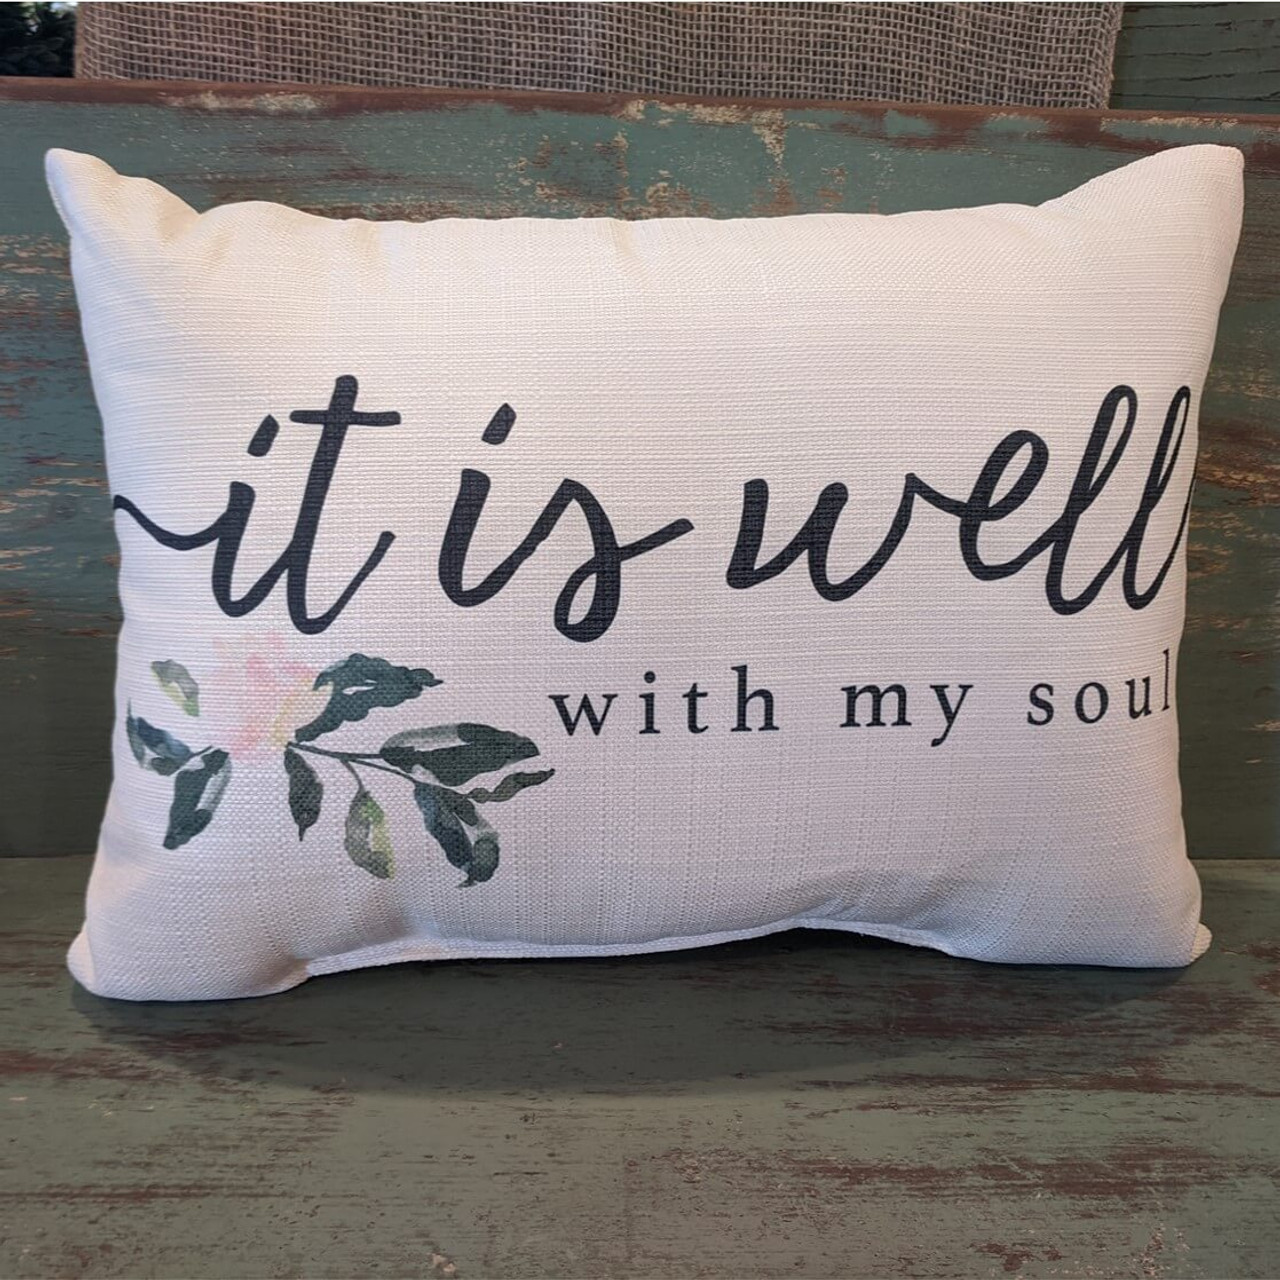 """The perfect way to cozy up any space! """"it is well with my soul"""" sentiment and floral design are dyed directly into the fabric, so it won't peel or crack. Made from a soft yet durable polyester fabric, your pillow will arrive stuffed with poly-fill and sewn shut. Approx. 20"""" W x 14"""" H; machine washable in cold water, delicate cycle- fluff, air dry flat."""